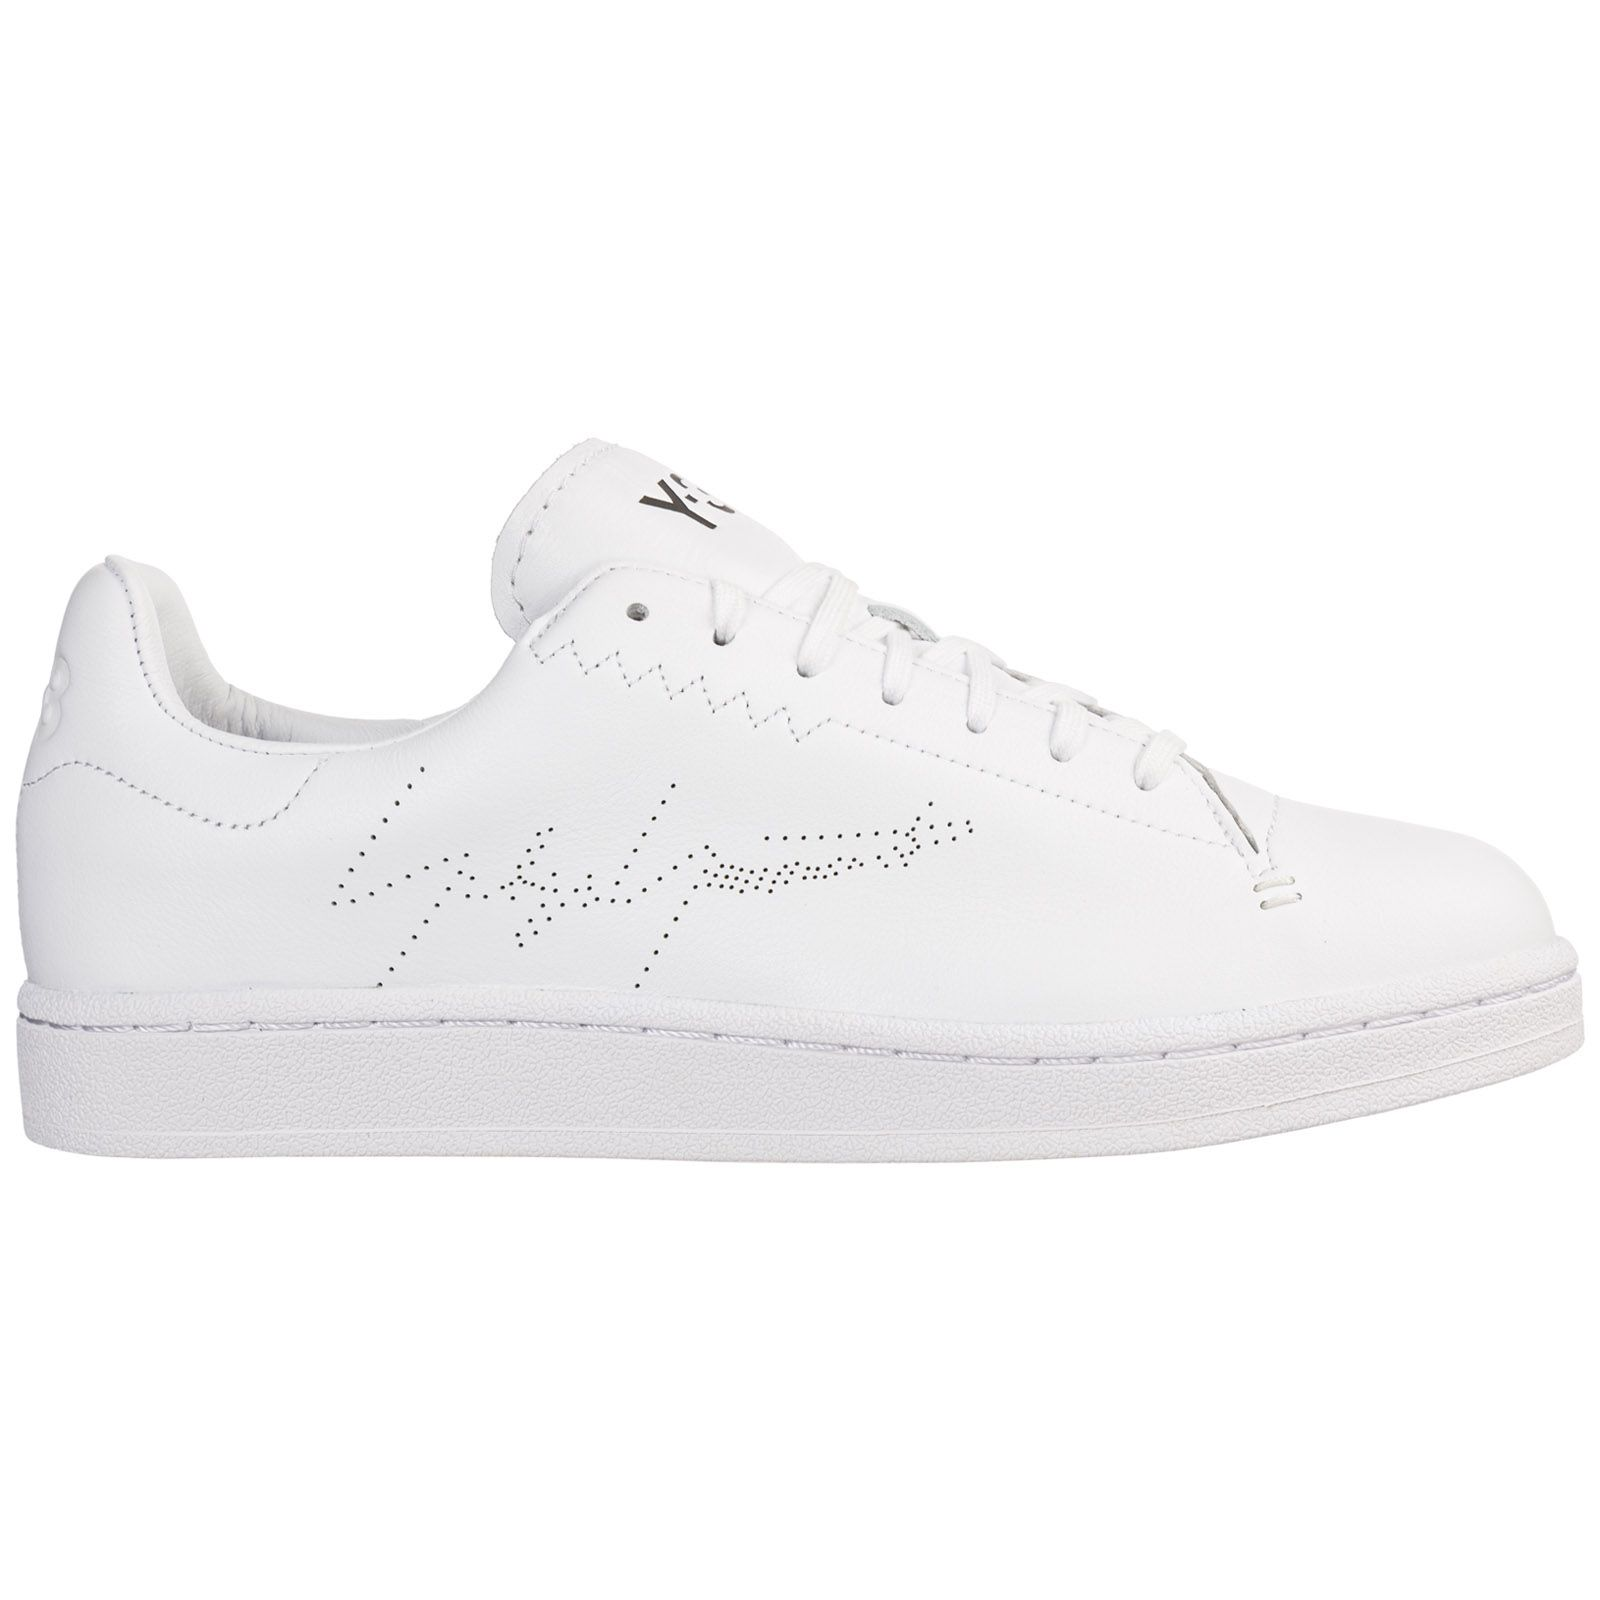 Y-3 Men's Shoes Leather Trainers